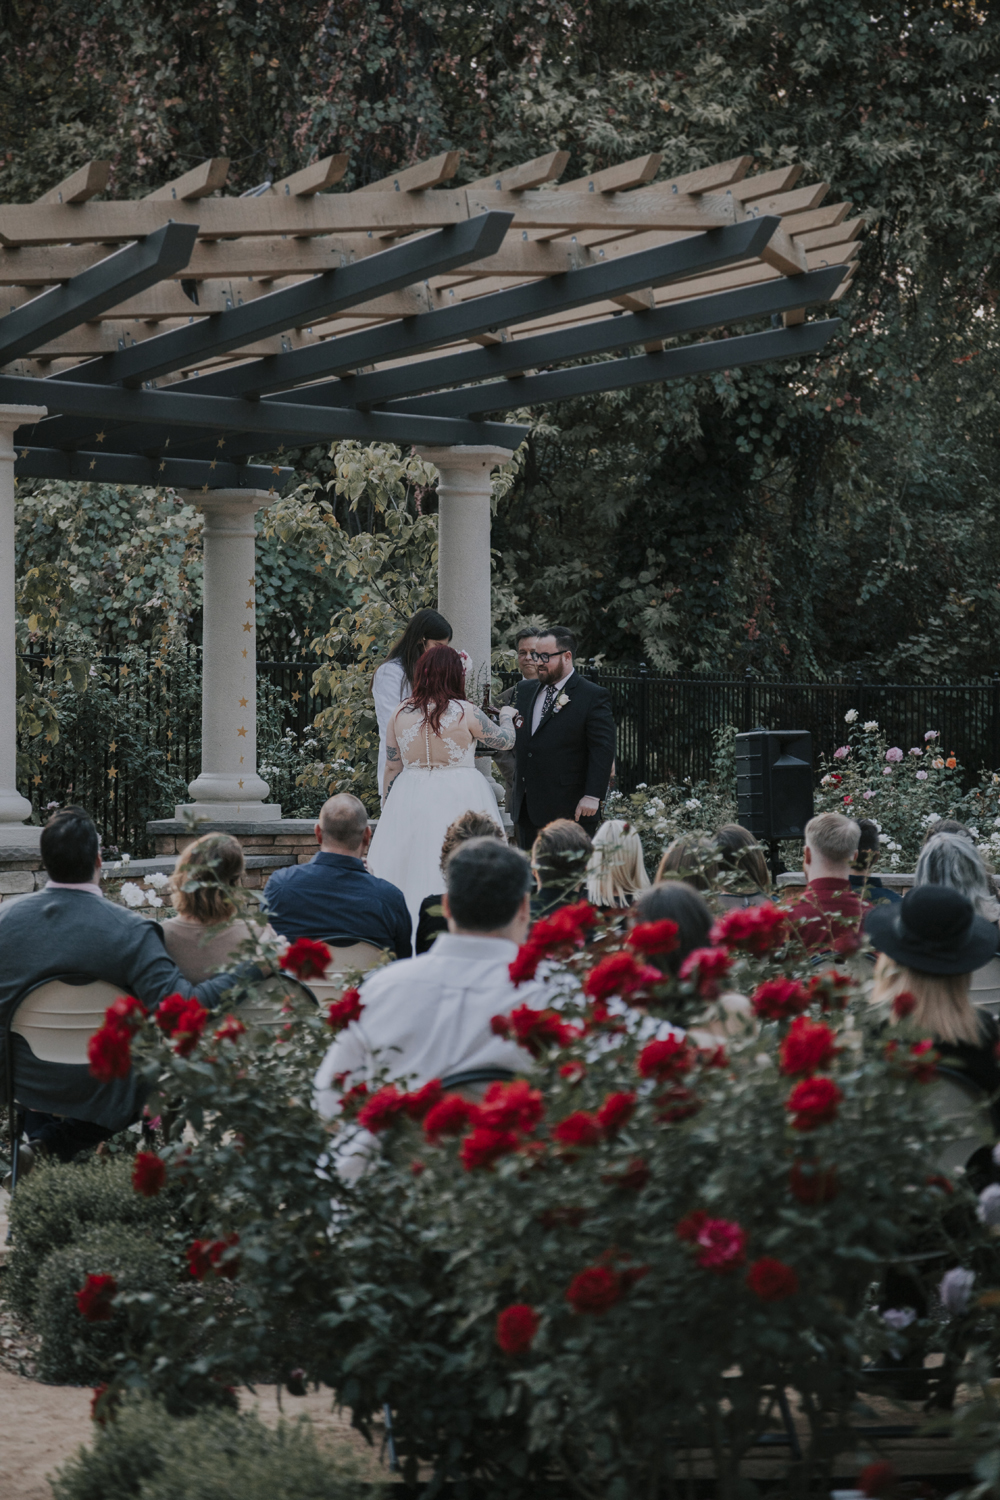 Wedding-photographer-at-Creekside-Rose-Garden-Chico-CA93.jpg